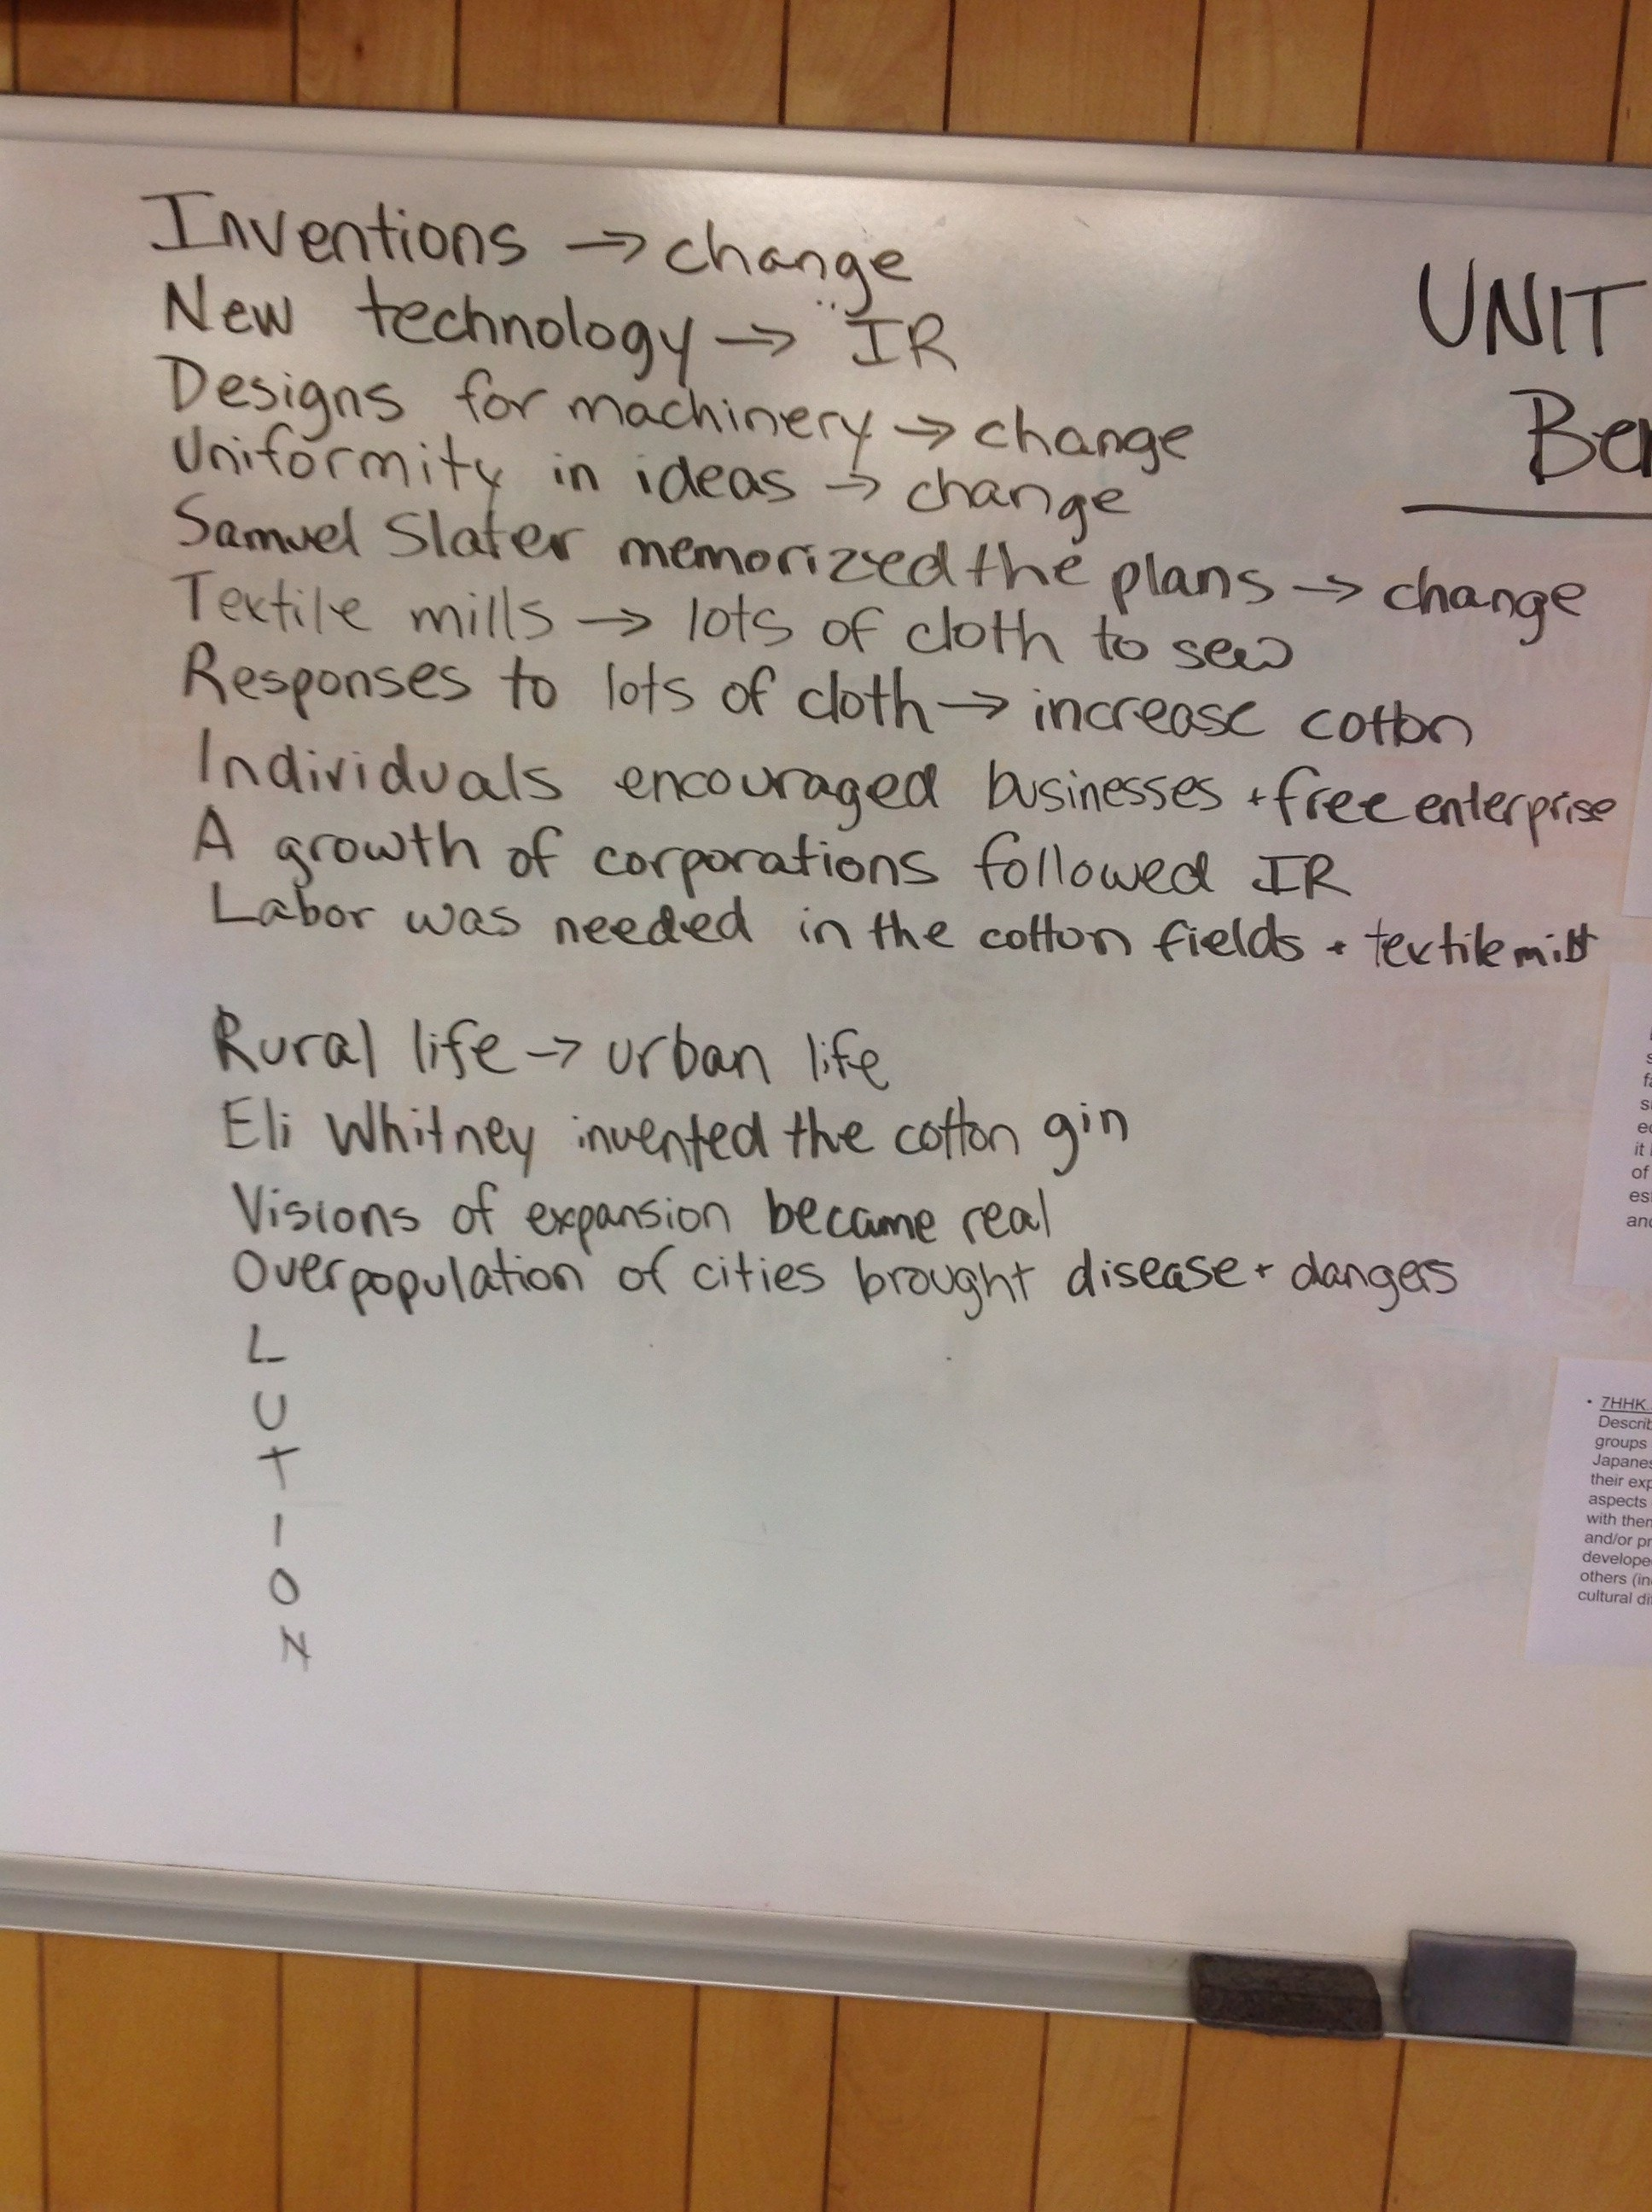 industrial revolution negative essay This lesson will introduce the first industrial revolution we will study the beginning of the industrial revolution, some of its major impacts.